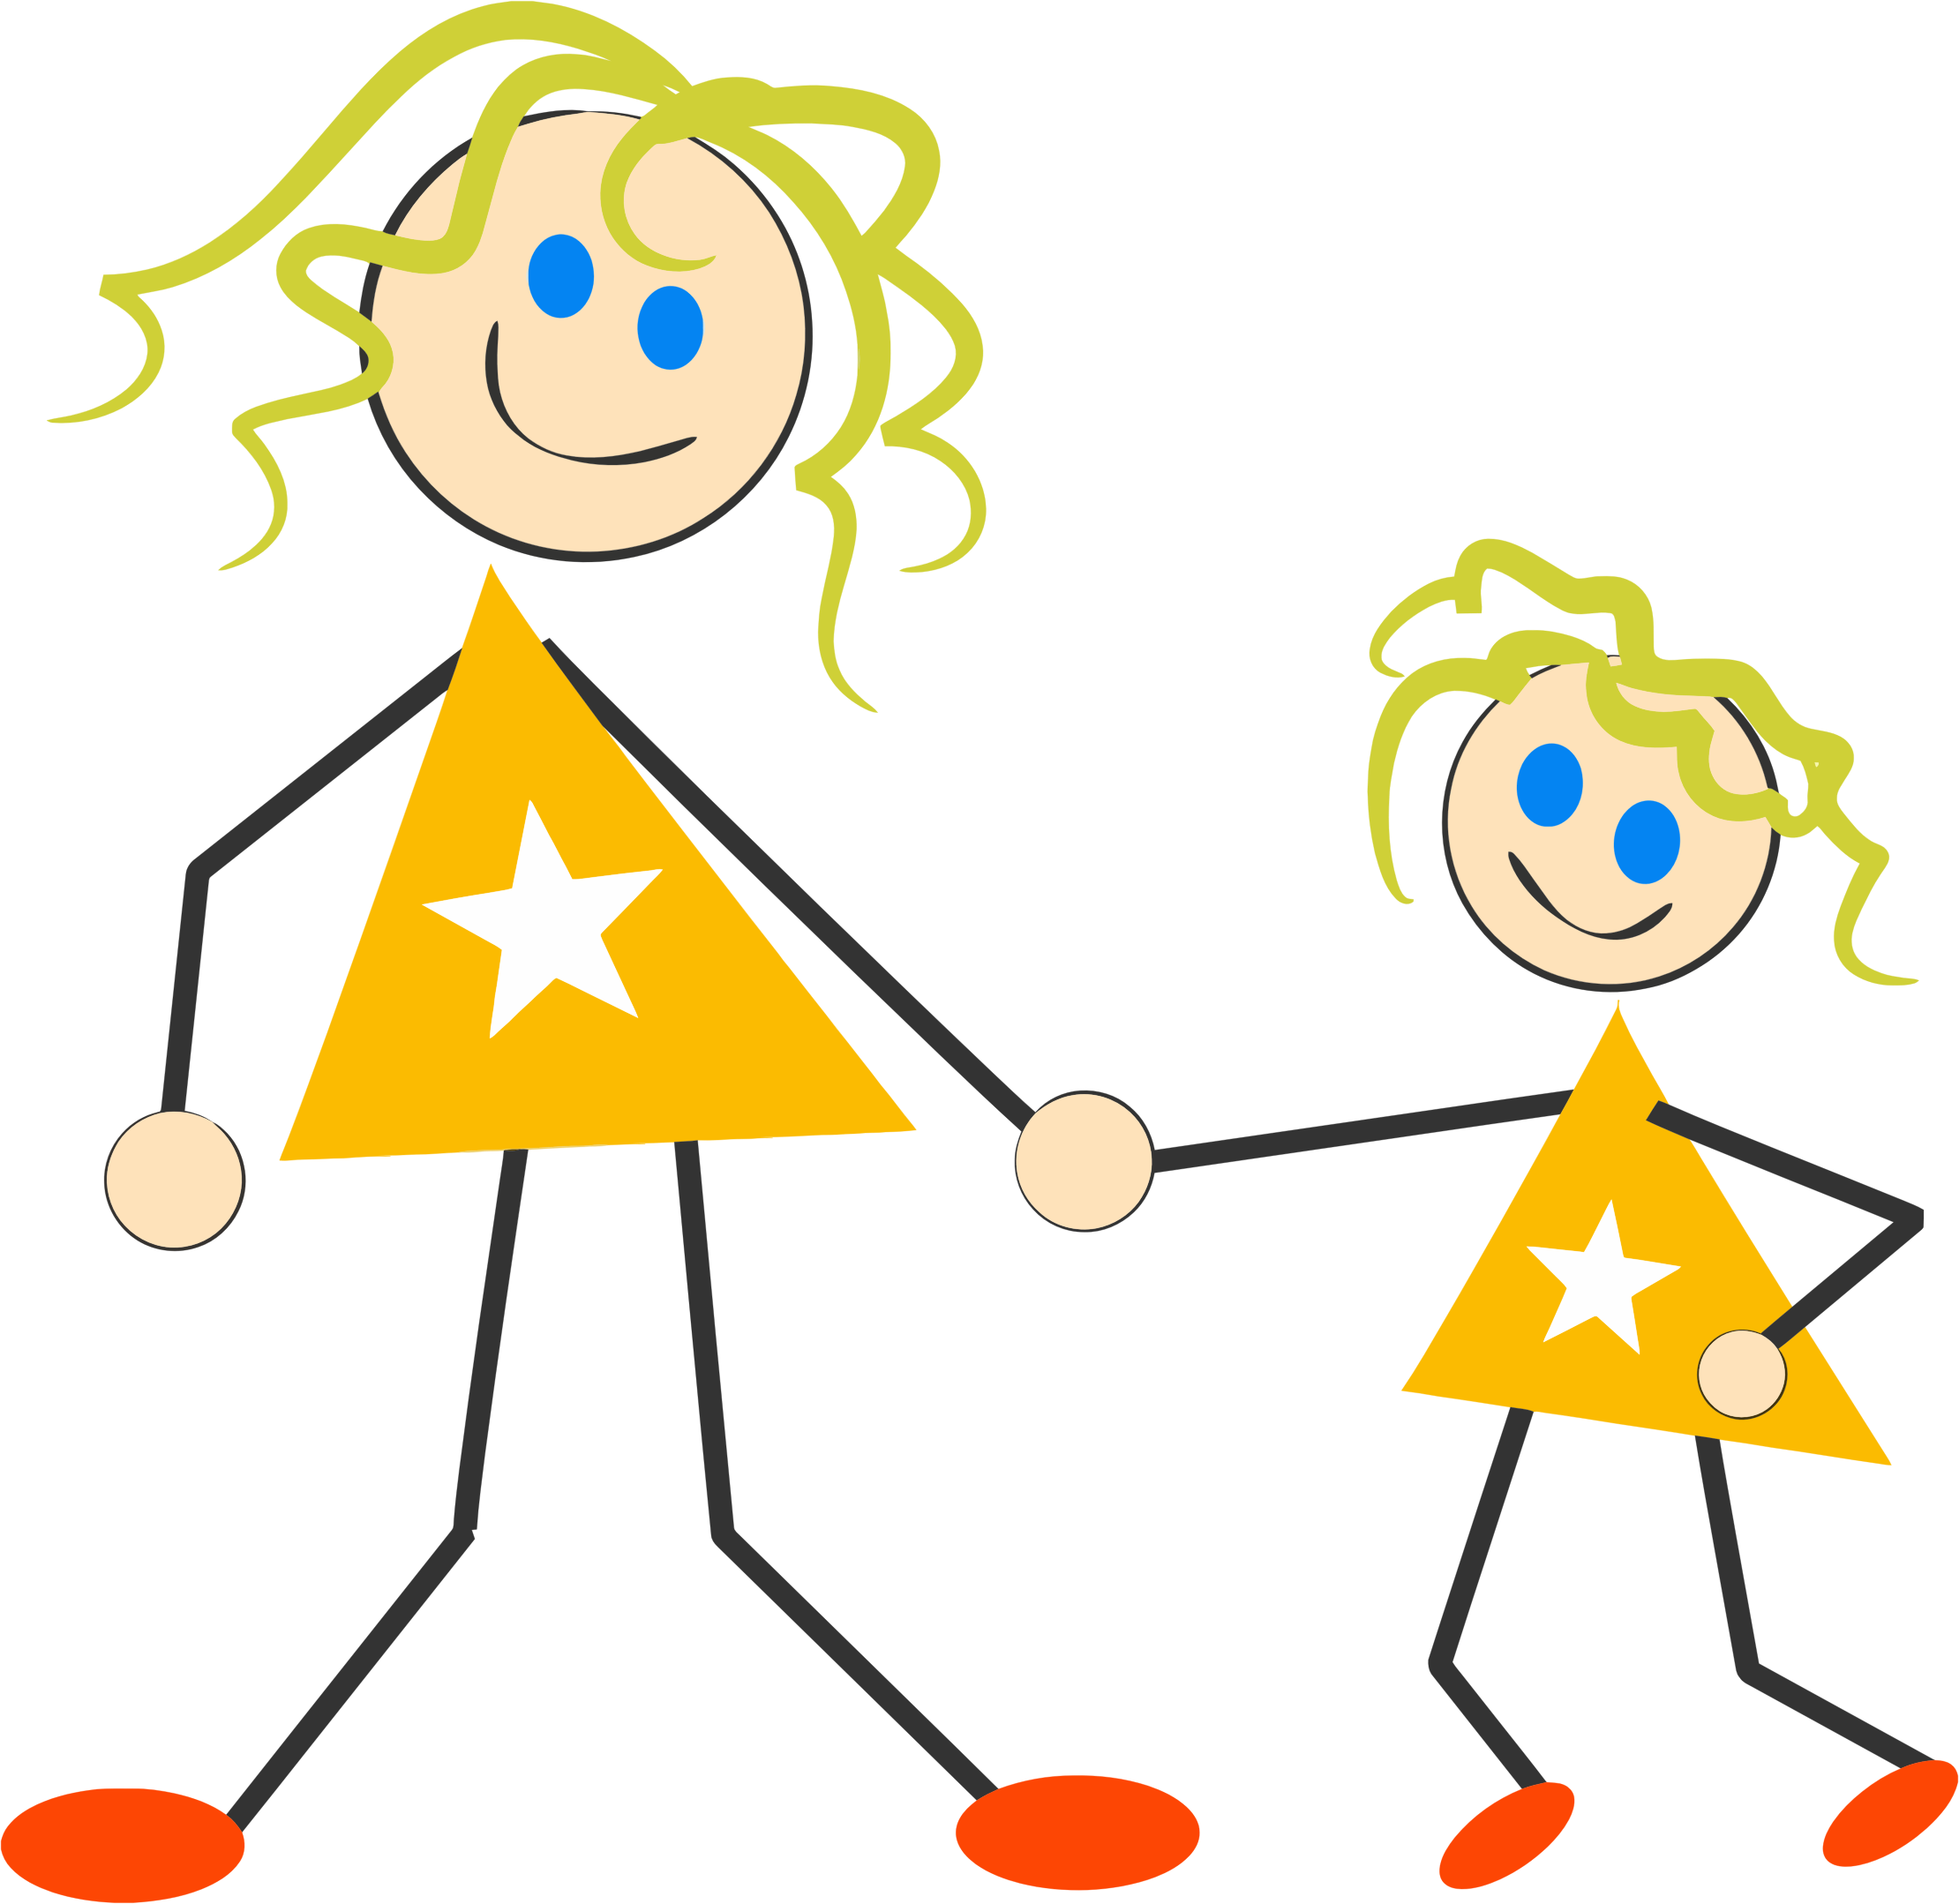 clip art free download Supermarket clipart mother daughter shopping. And big image png